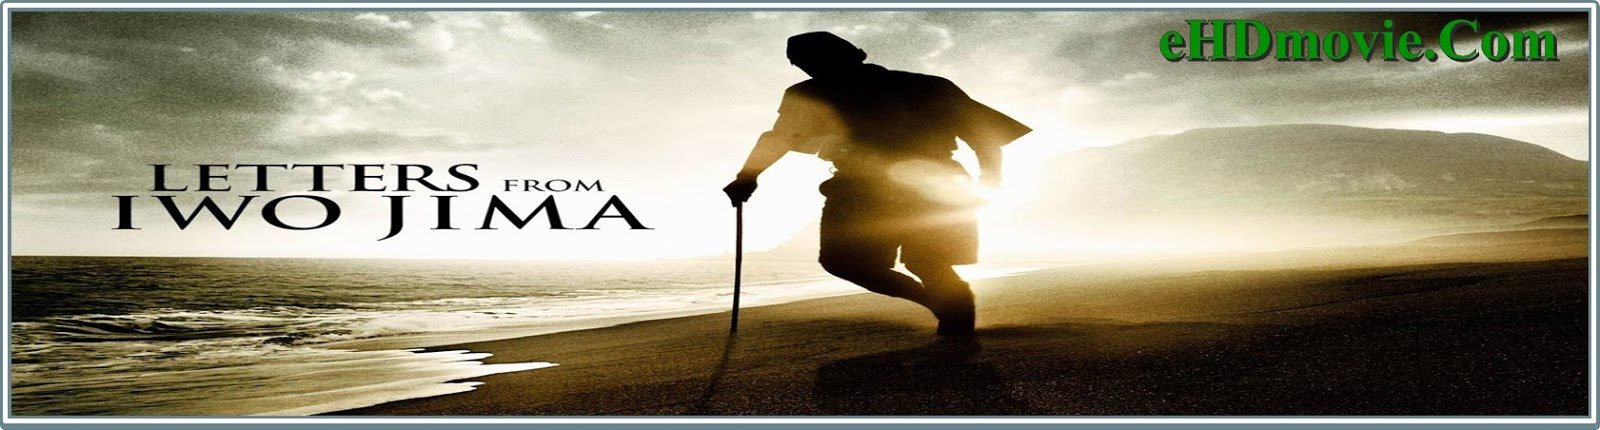 Letters from Iwo Jima 2006 Full Movie English 720p - 480p ORG BRRip 500MB - 1GB ESubs Free Download